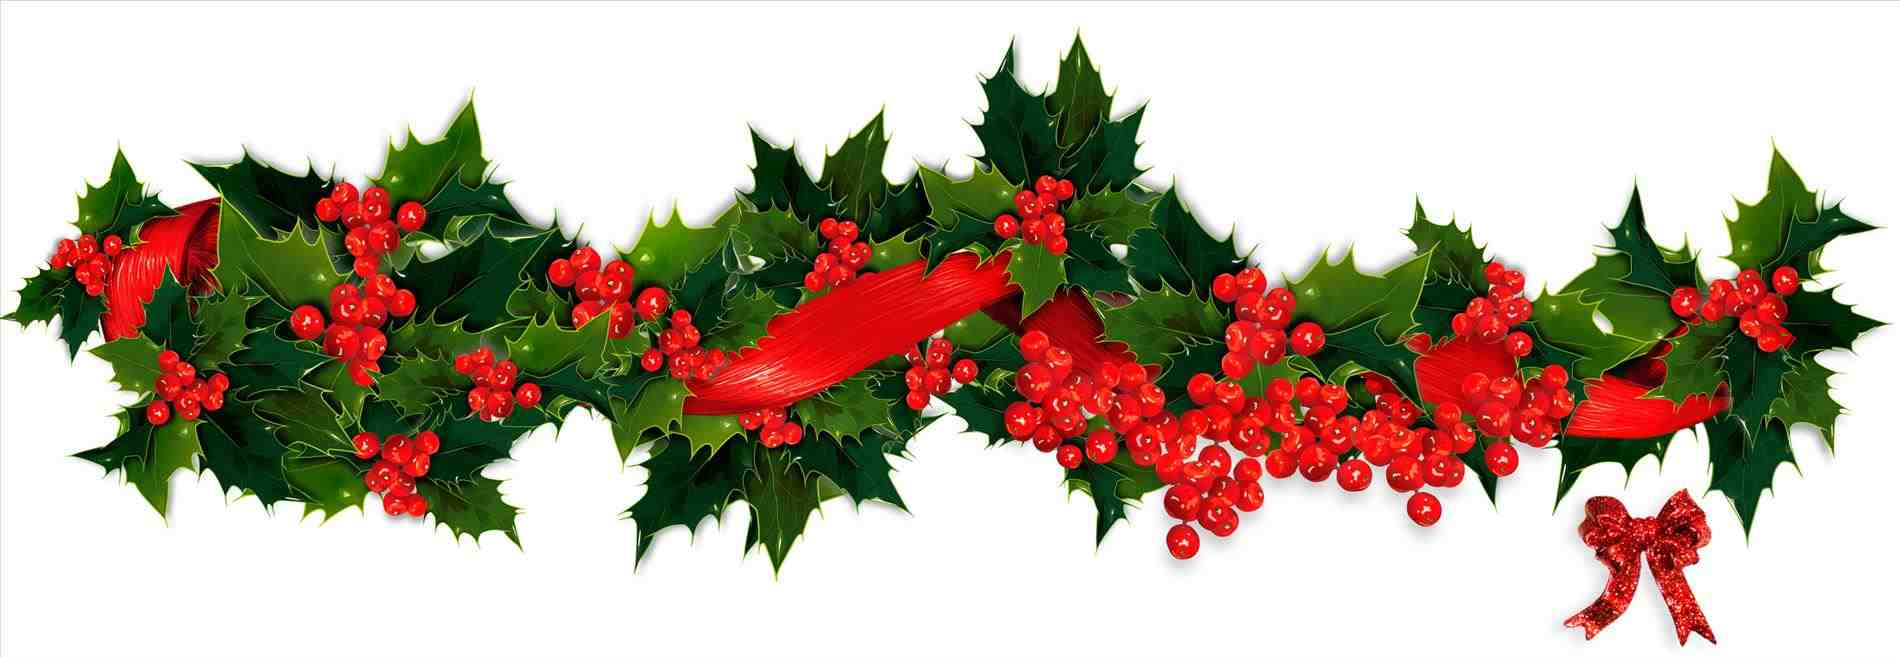 1900x657 Christmas Holly Garland Clipart Cheminee.website